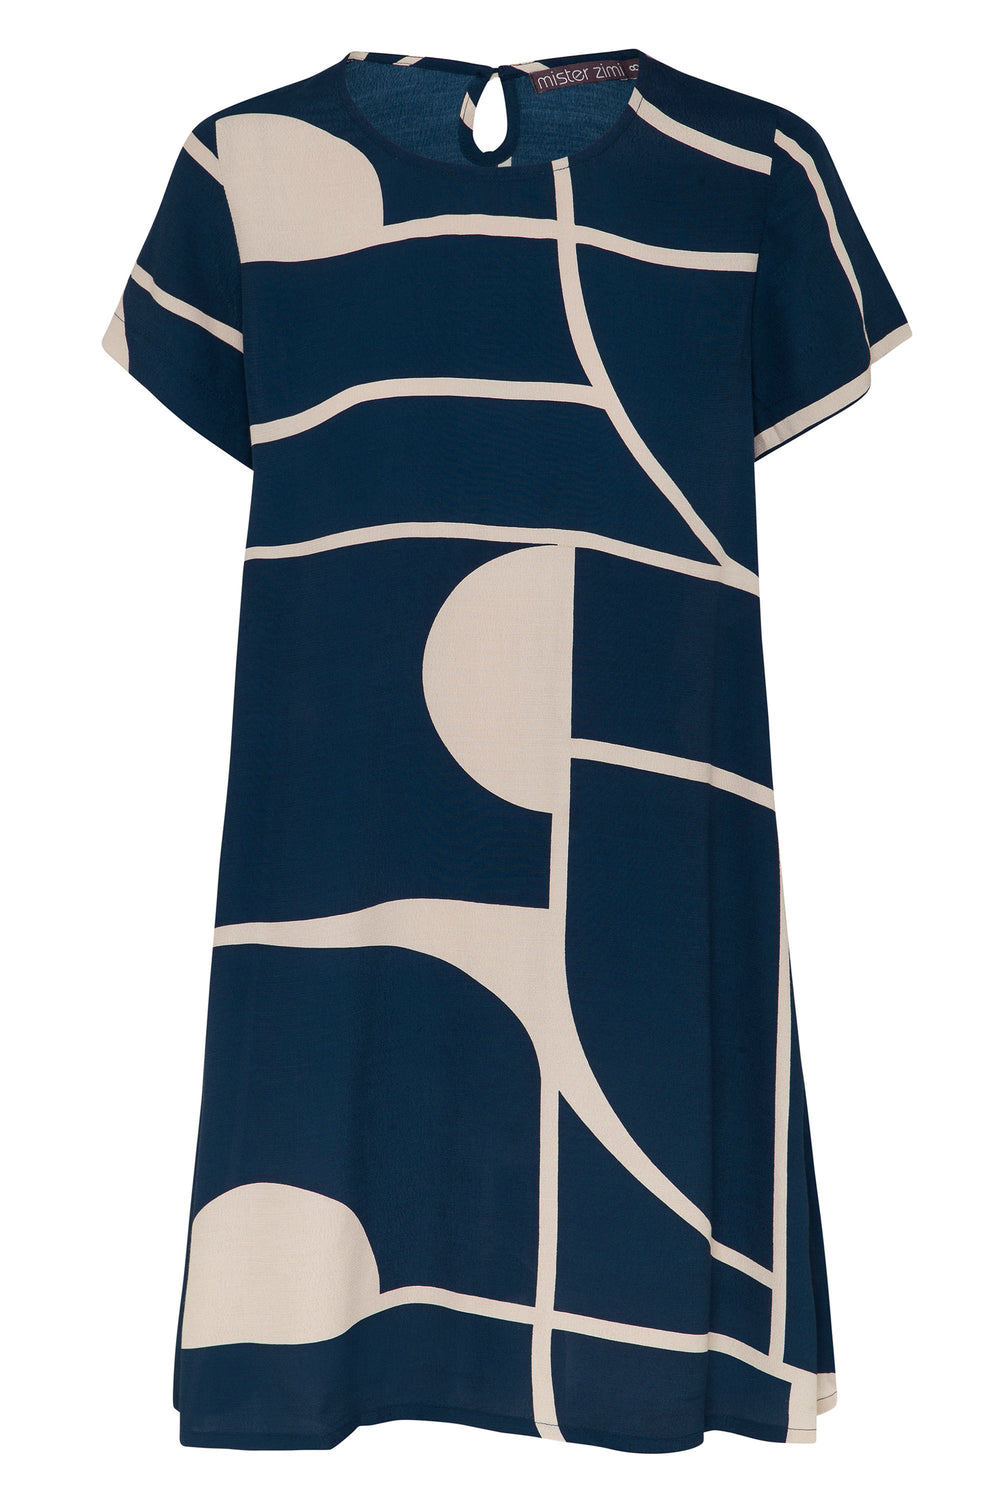 Spring Tina Dress In Playa